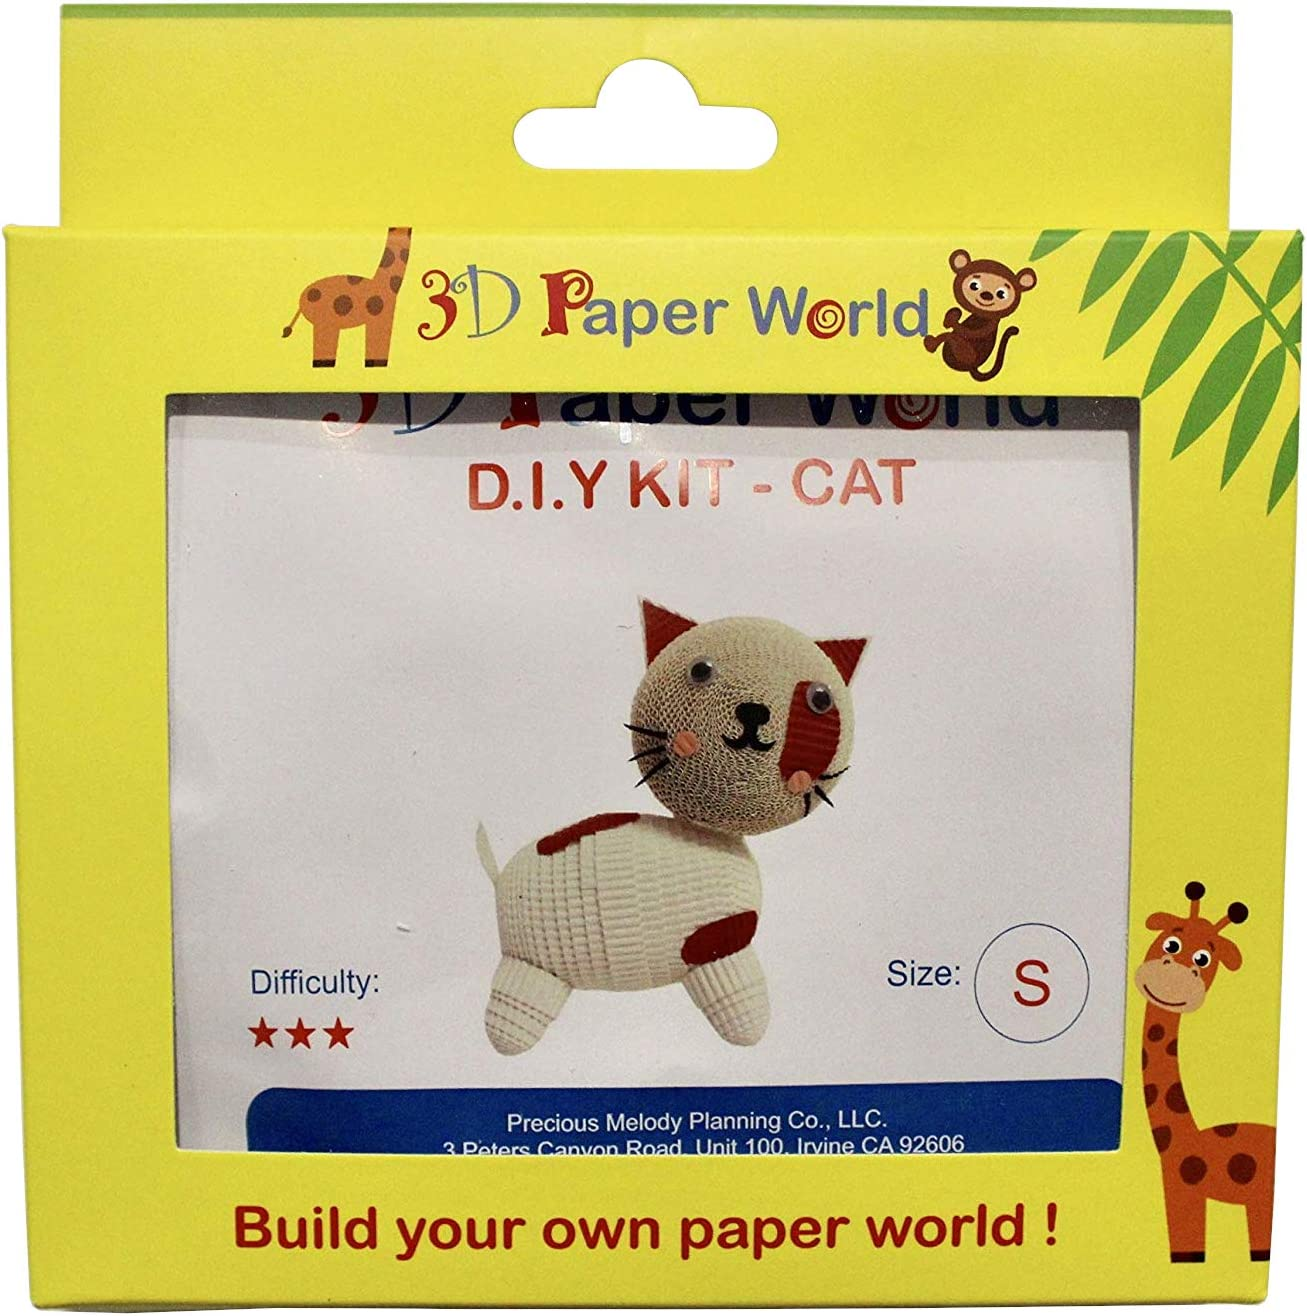 Handmade Toys for Kids and Adults Alike Spotted, Small Great Decorations for Home or a Party. Cat Paper Craft DIY Kit : 3D Paper World Quilling